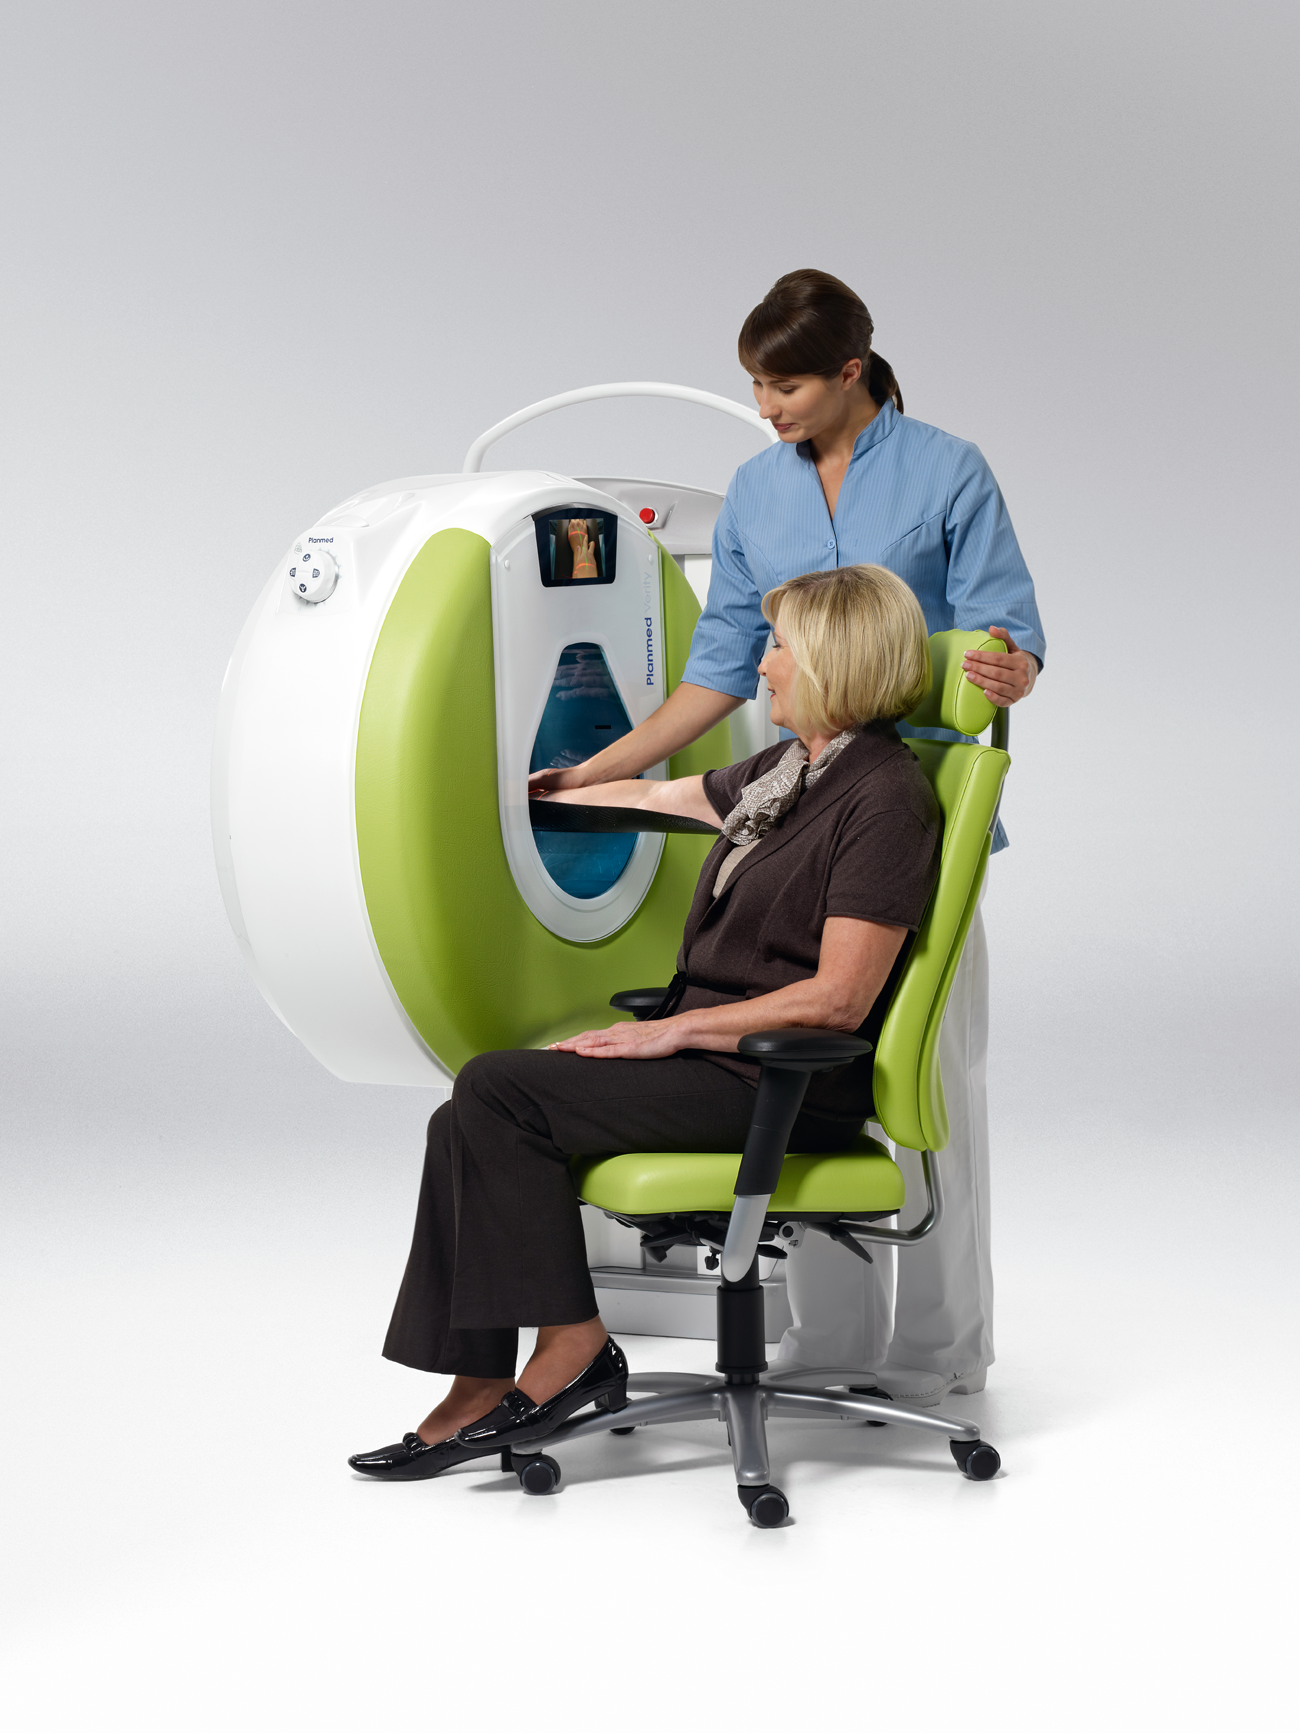 Designapplause Planmed Verity Orthopedic Imaging